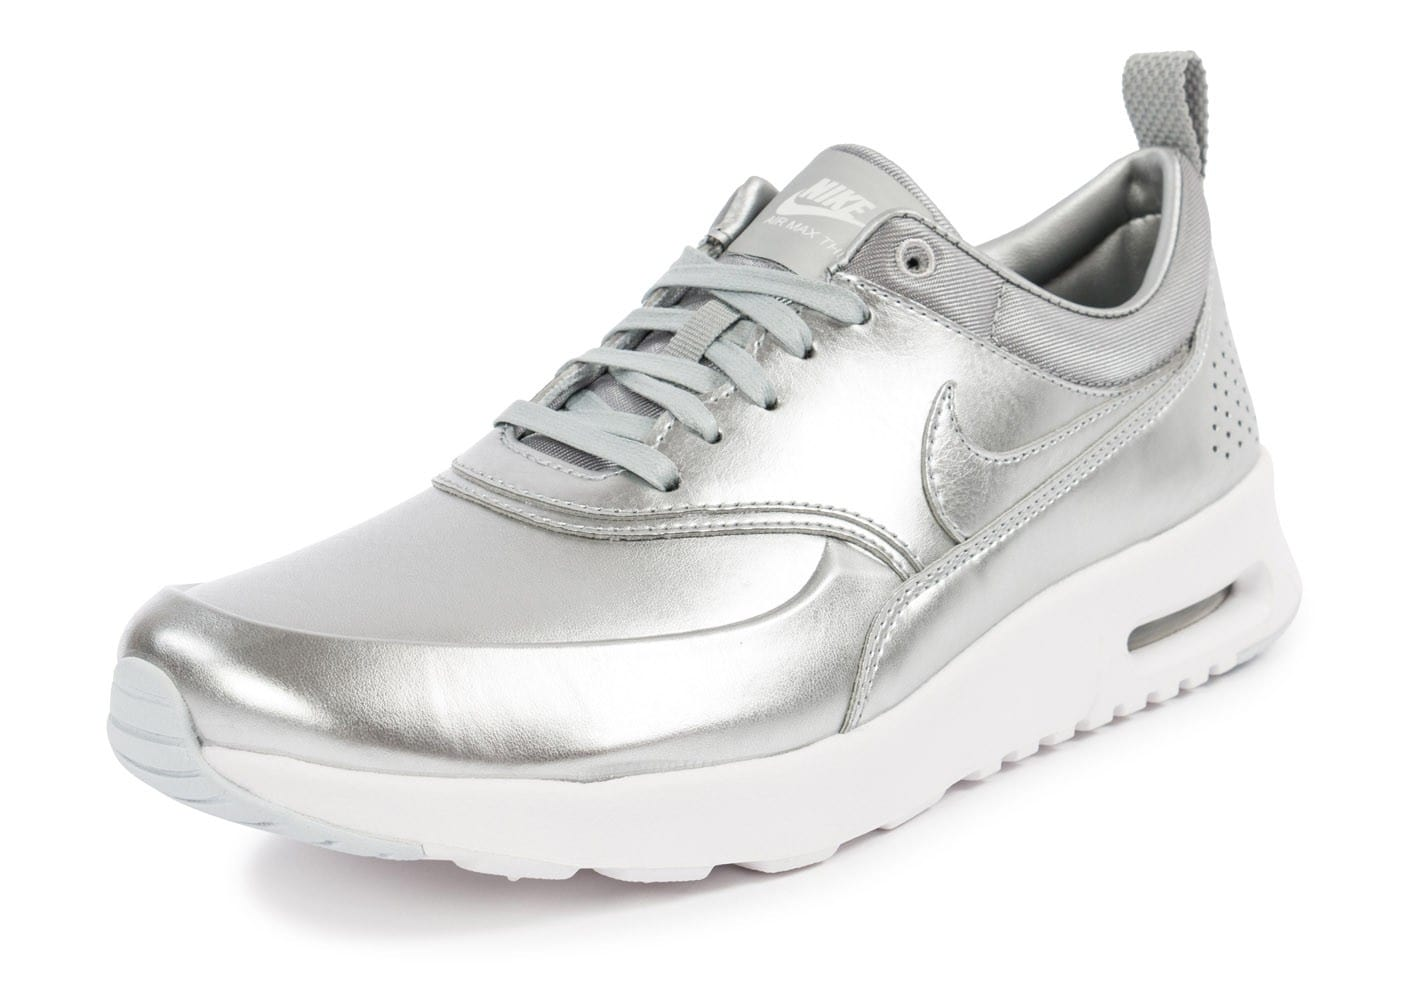 nike air max thea metallic chaussures chaussures chausport. Black Bedroom Furniture Sets. Home Design Ideas